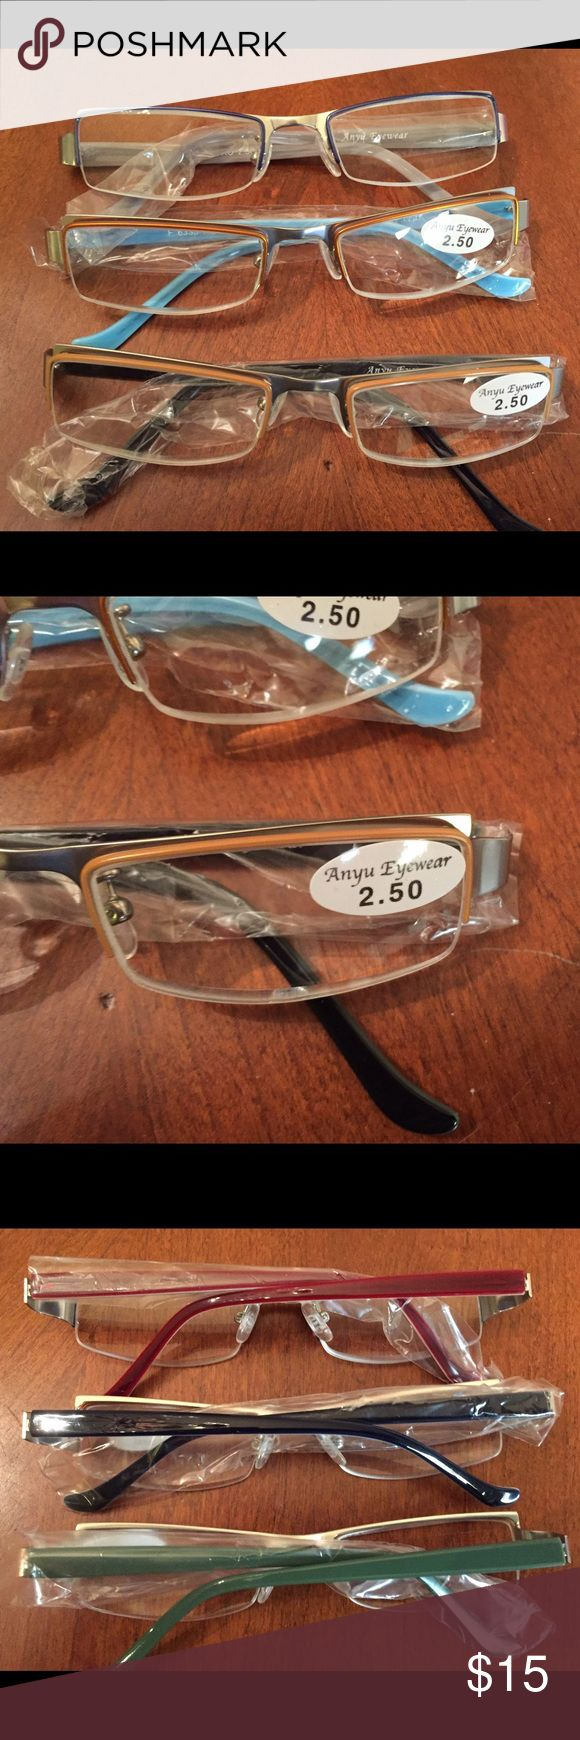 Set of 3 Reading Glasses 3 Pair of Reading Glasses. Never worn, one is a bronze color, one is a gold, and one is a black. Purchased them thinking I could get by without going and getting REAL GLASSES!  So they still have the plastic in them.NWT Anyu Eyewear Accessories Glasses